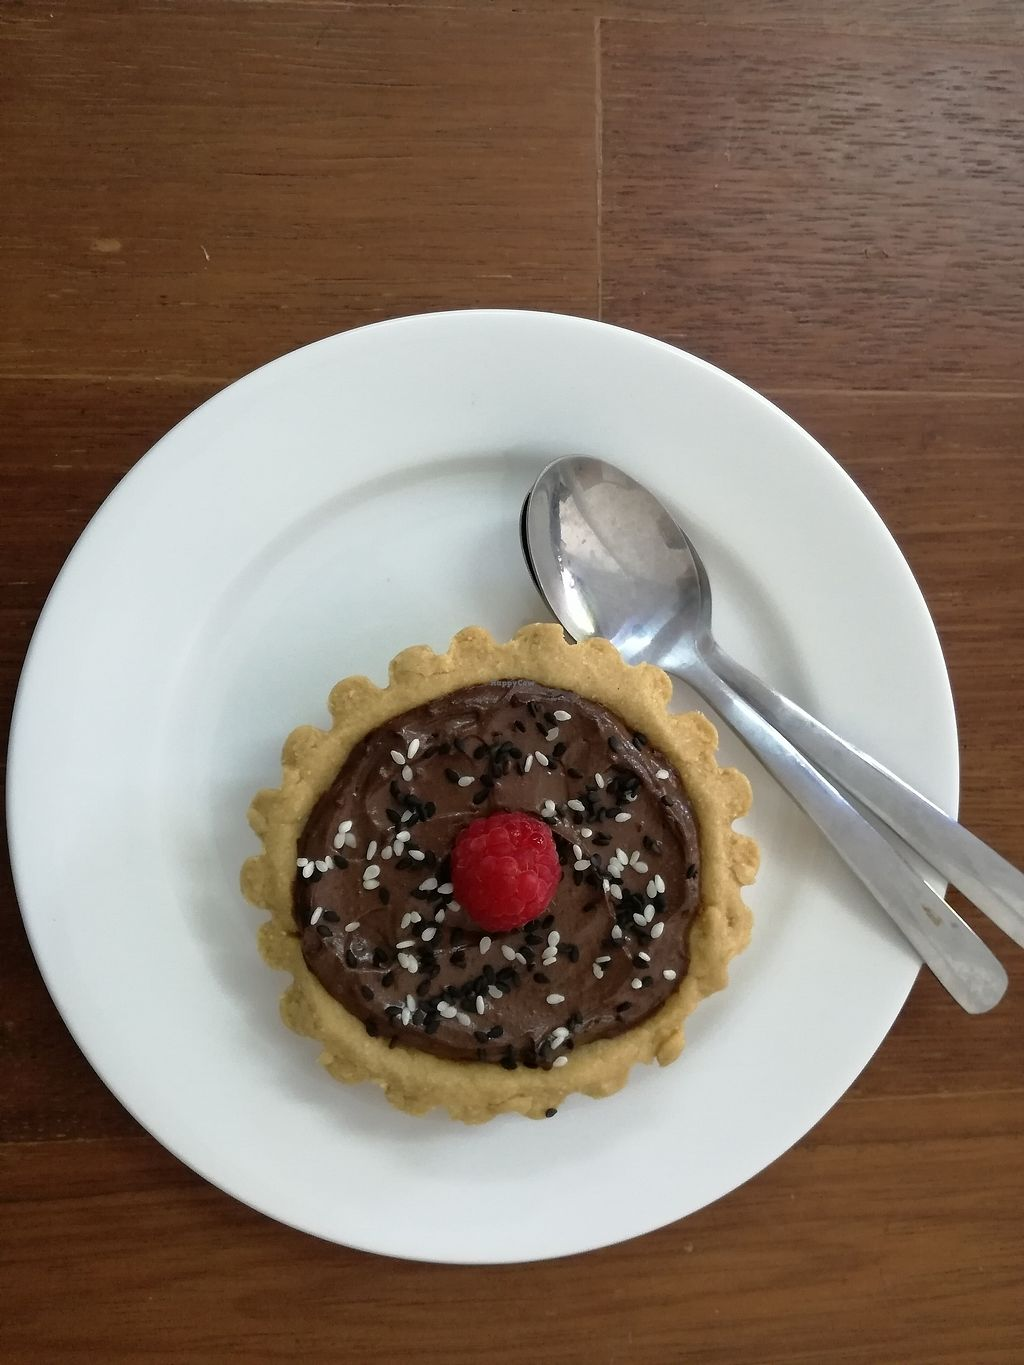 """Photo of Canix Coffee  by <a href=""""/members/profile/Rogera"""">Rogera</a> <br/>Vegan chocolate Cake <br/> August 10, 2017  - <a href='/contact/abuse/image/98327/291251'>Report</a>"""